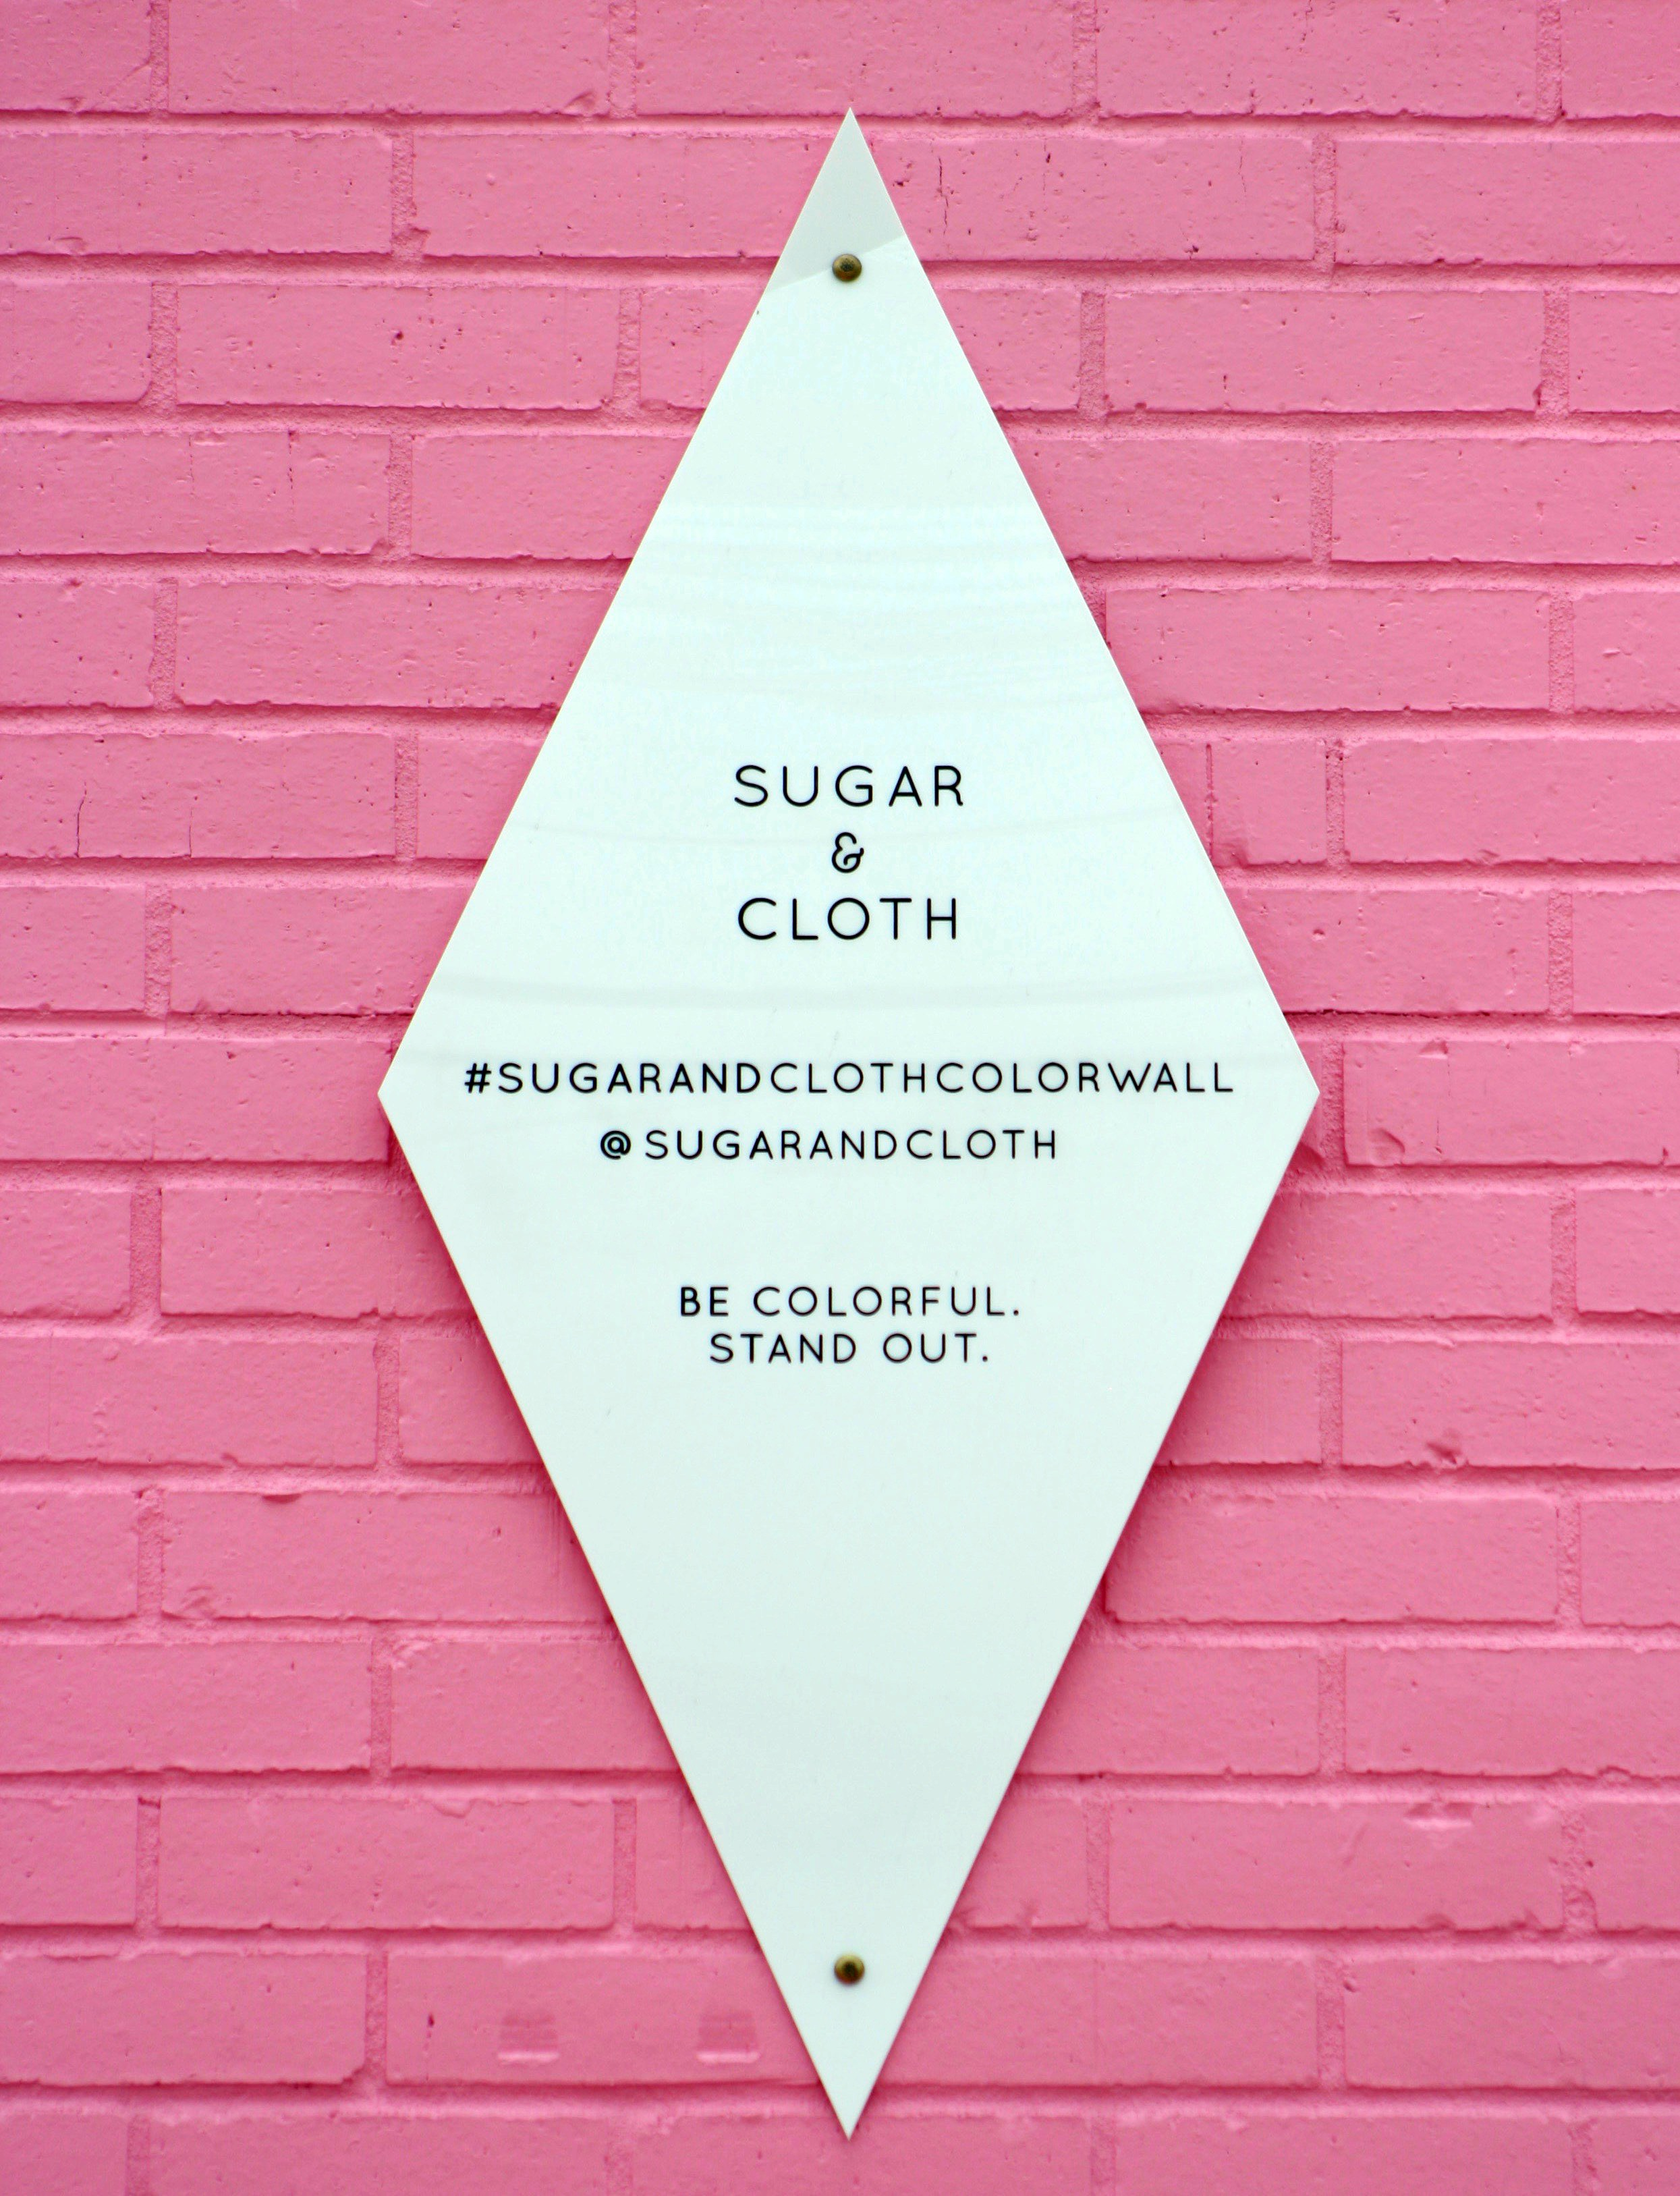 Sugar&Cloth color wall - Yomarianablog